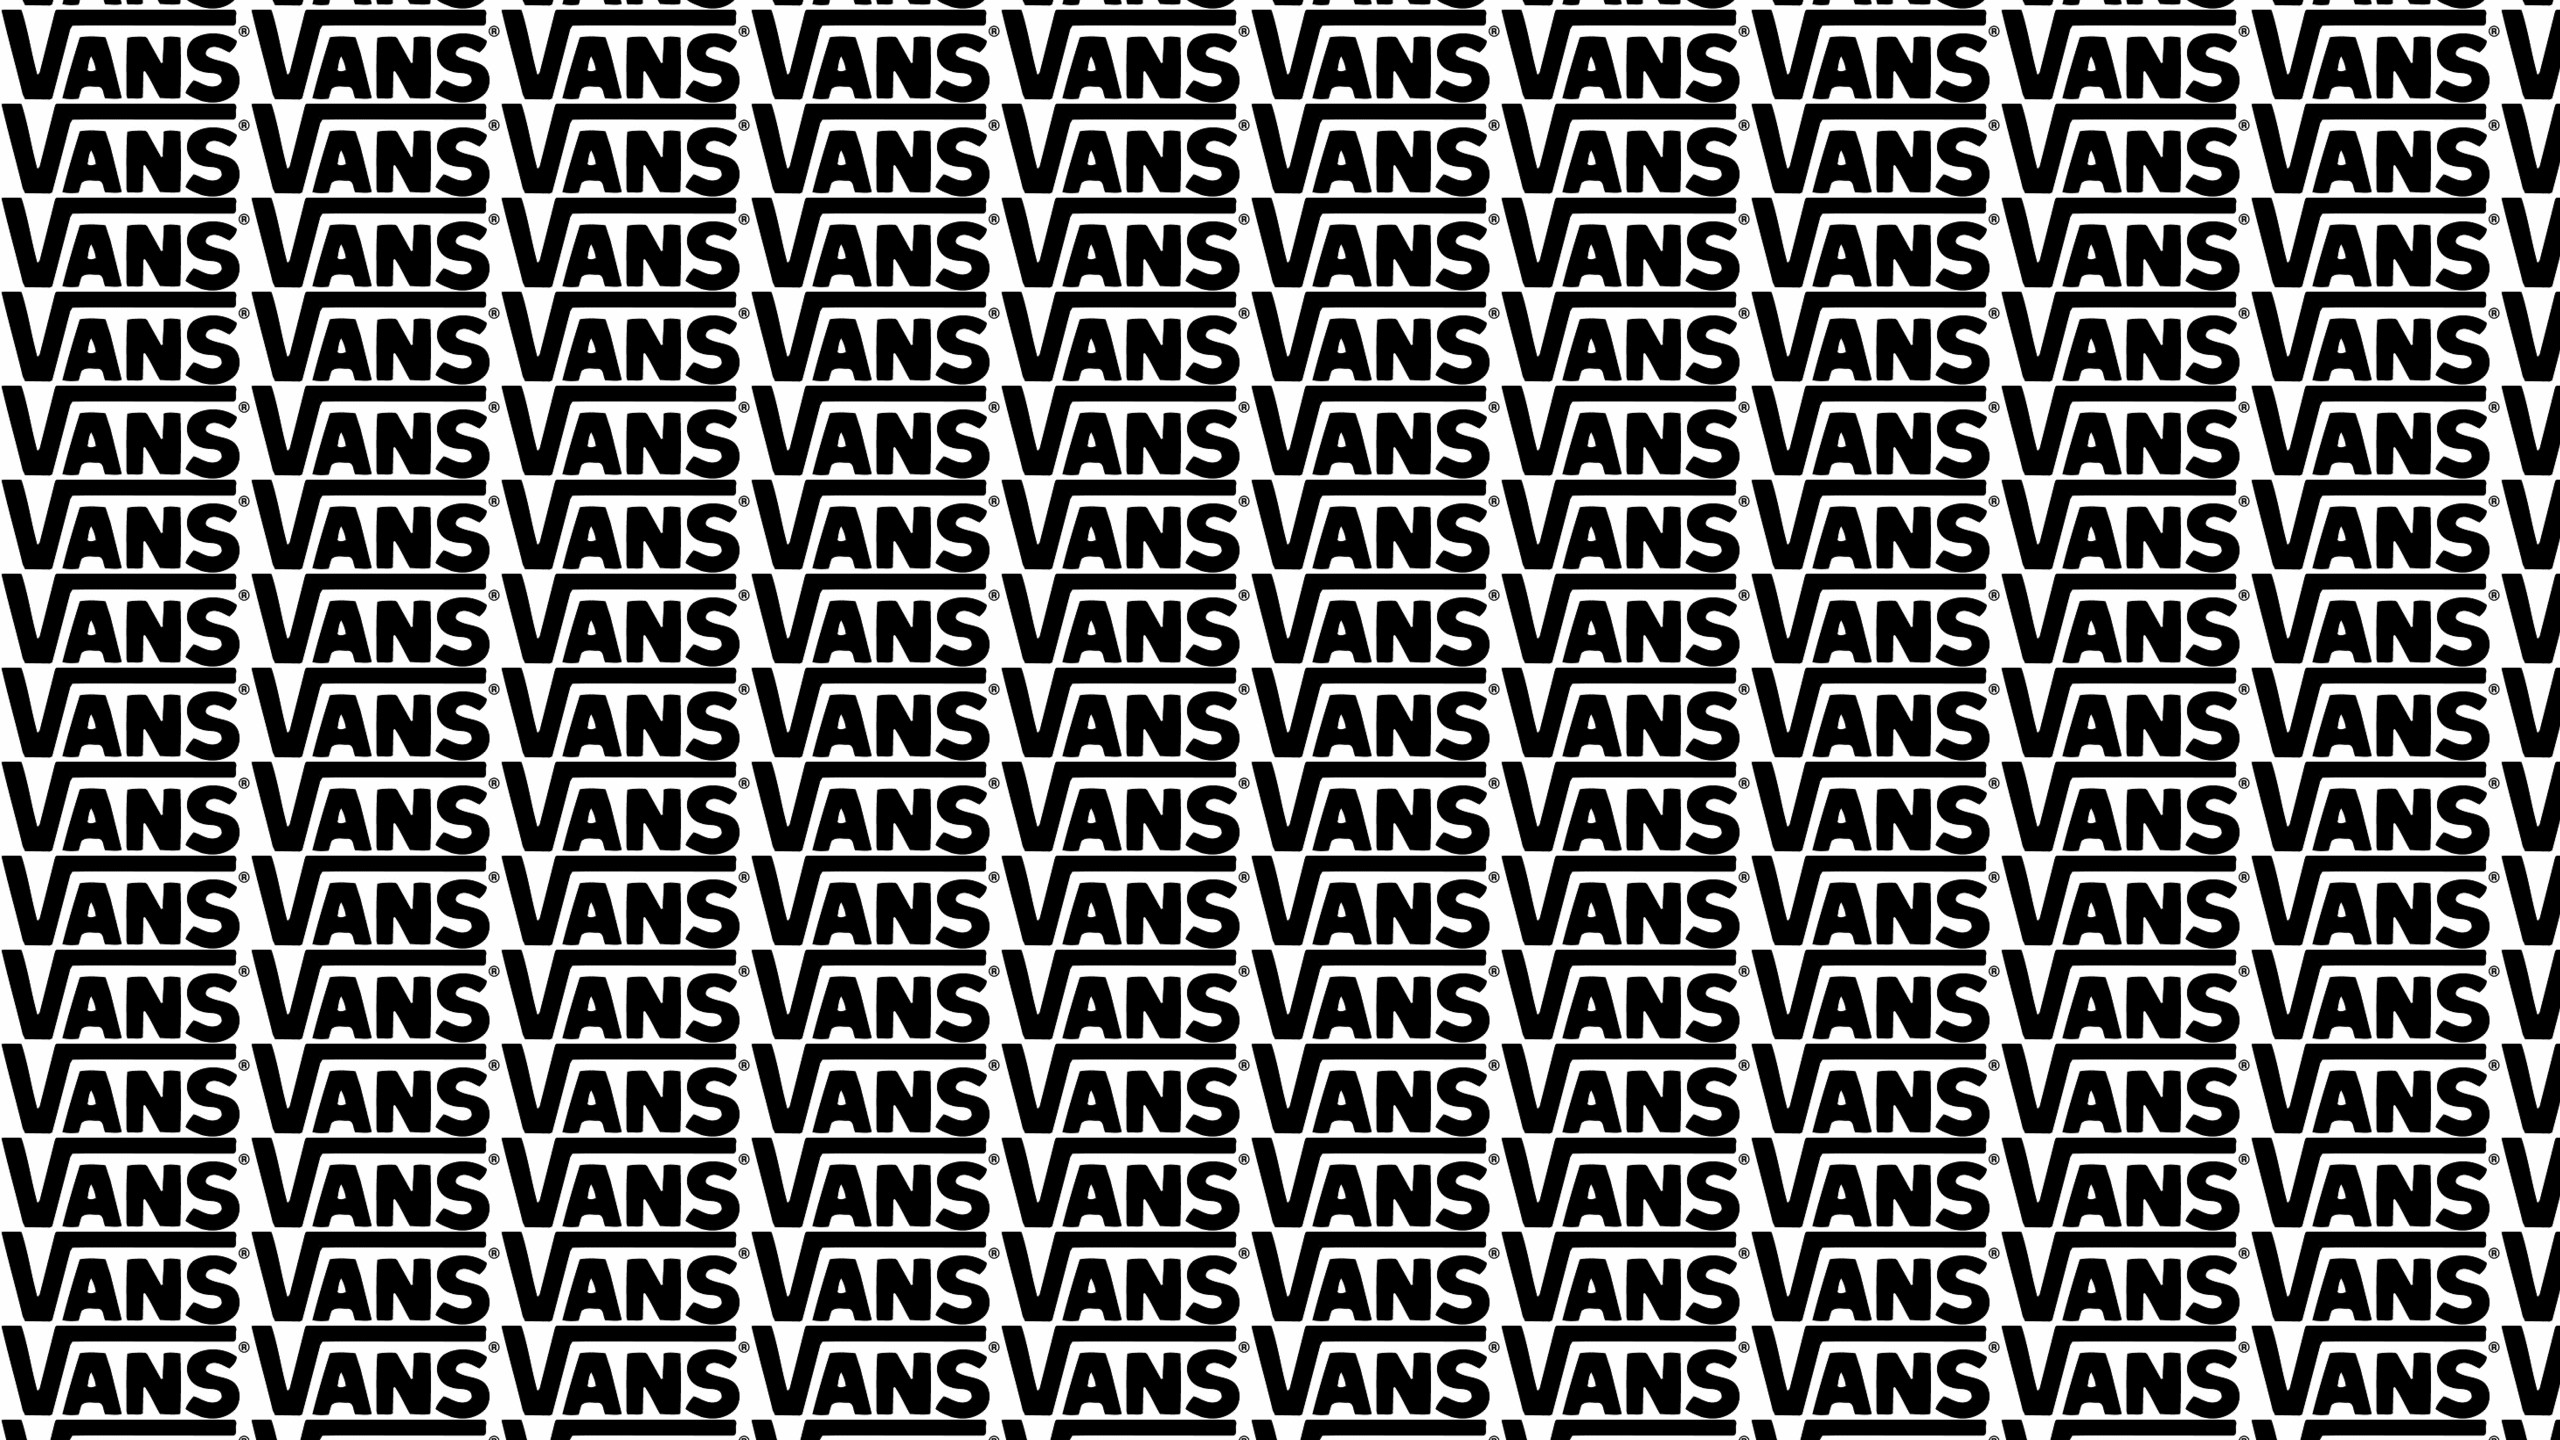 Vans wallpaper iphone hd 61 images - Off white wallpaper hd ...